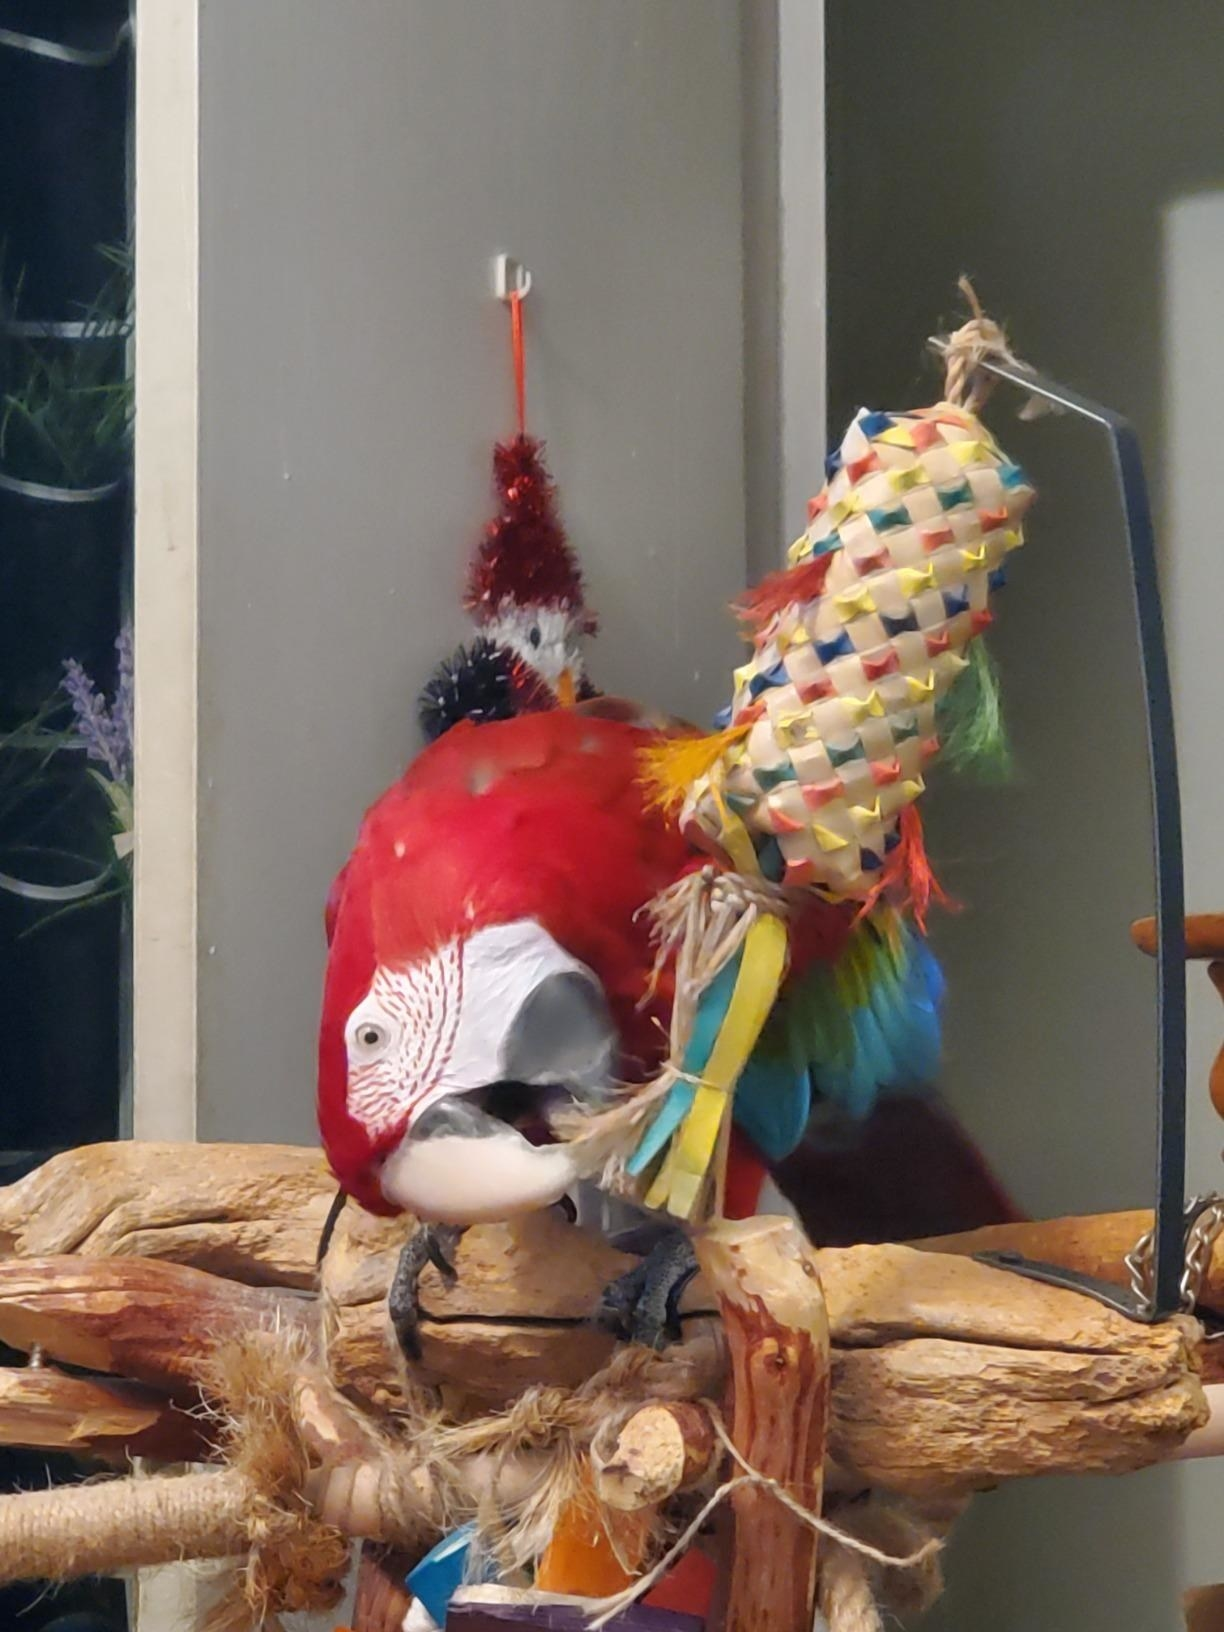 A parrot pecking at the cylindrical toy